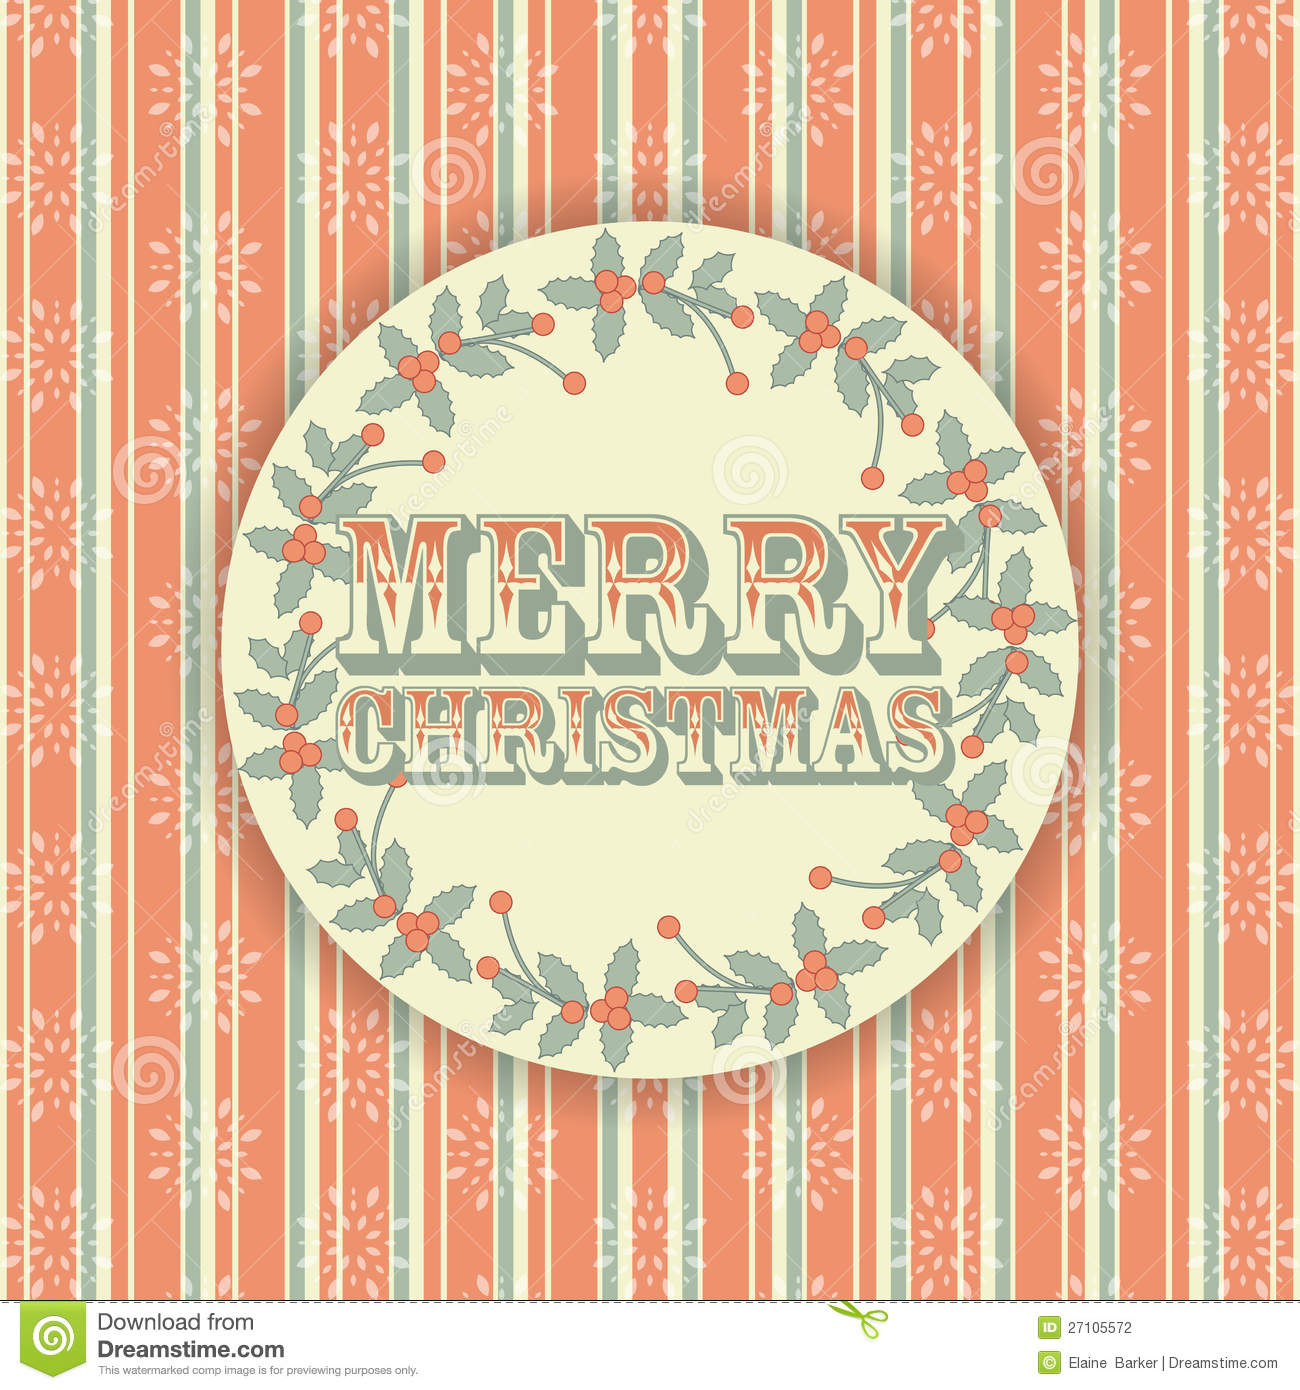 Retro Merry Christmas Background Stock Vector - Image ...